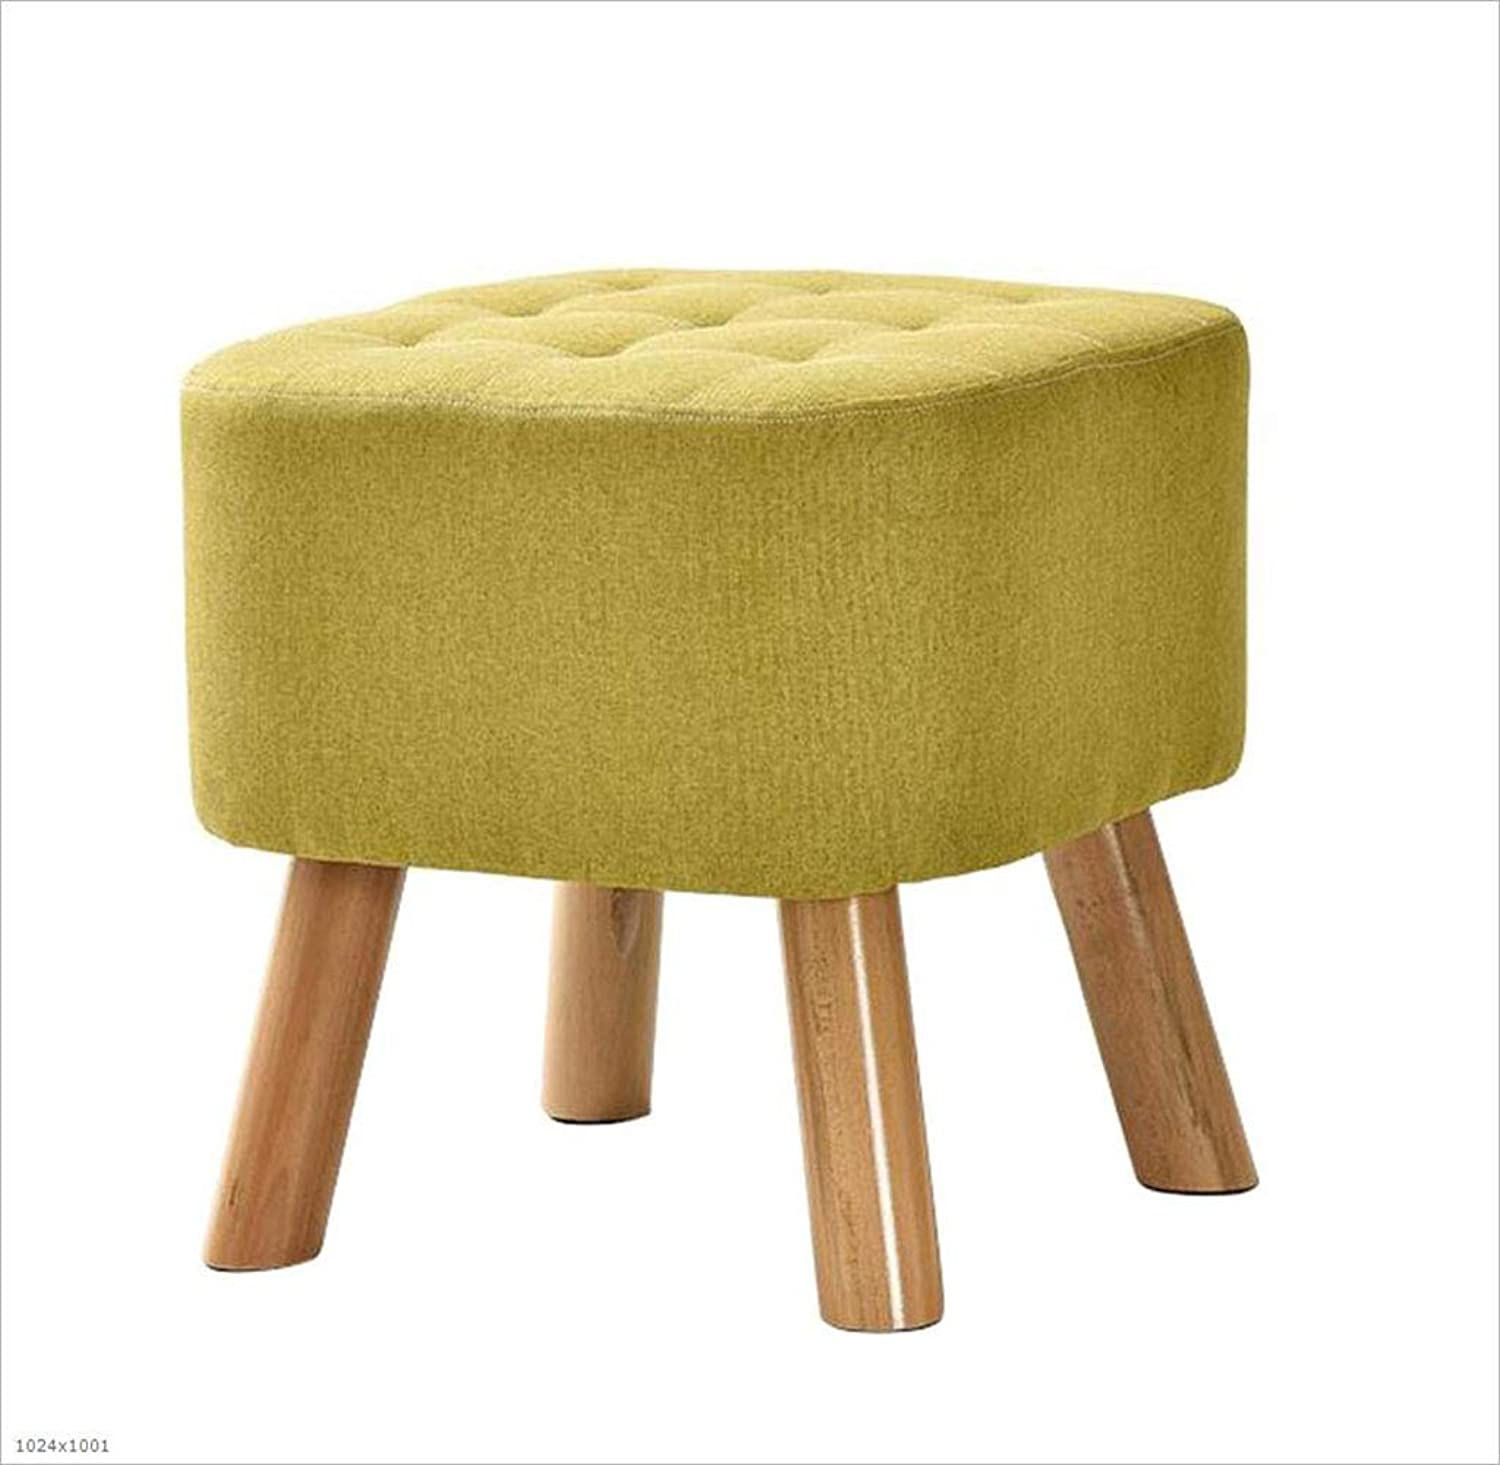 Square Footstool Fabric Cushion Detachable Sofa Stool Wooden 4 Legs Support Size 40X40x40cm,Green